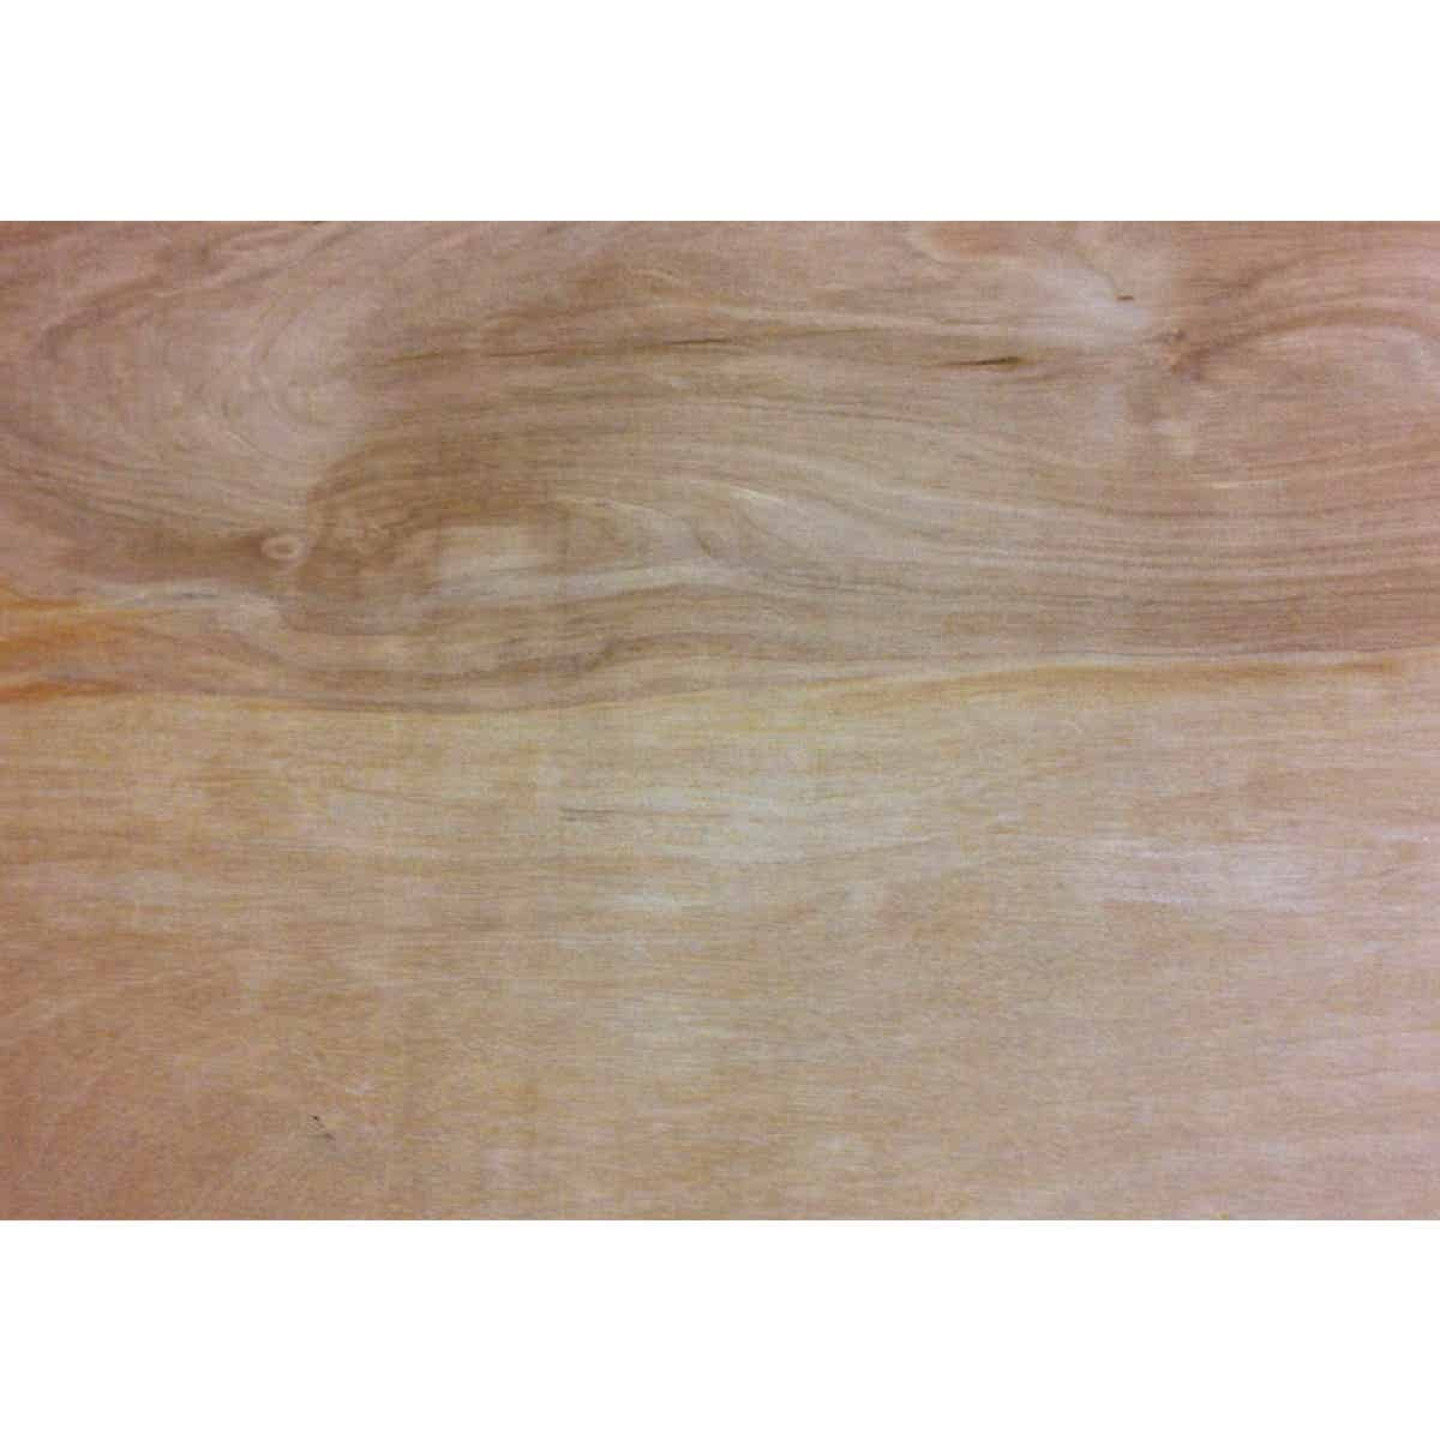 Universal Forest Products 3/8 In. x 24 In. x 48 In. Birch Plywood Panel Image 1